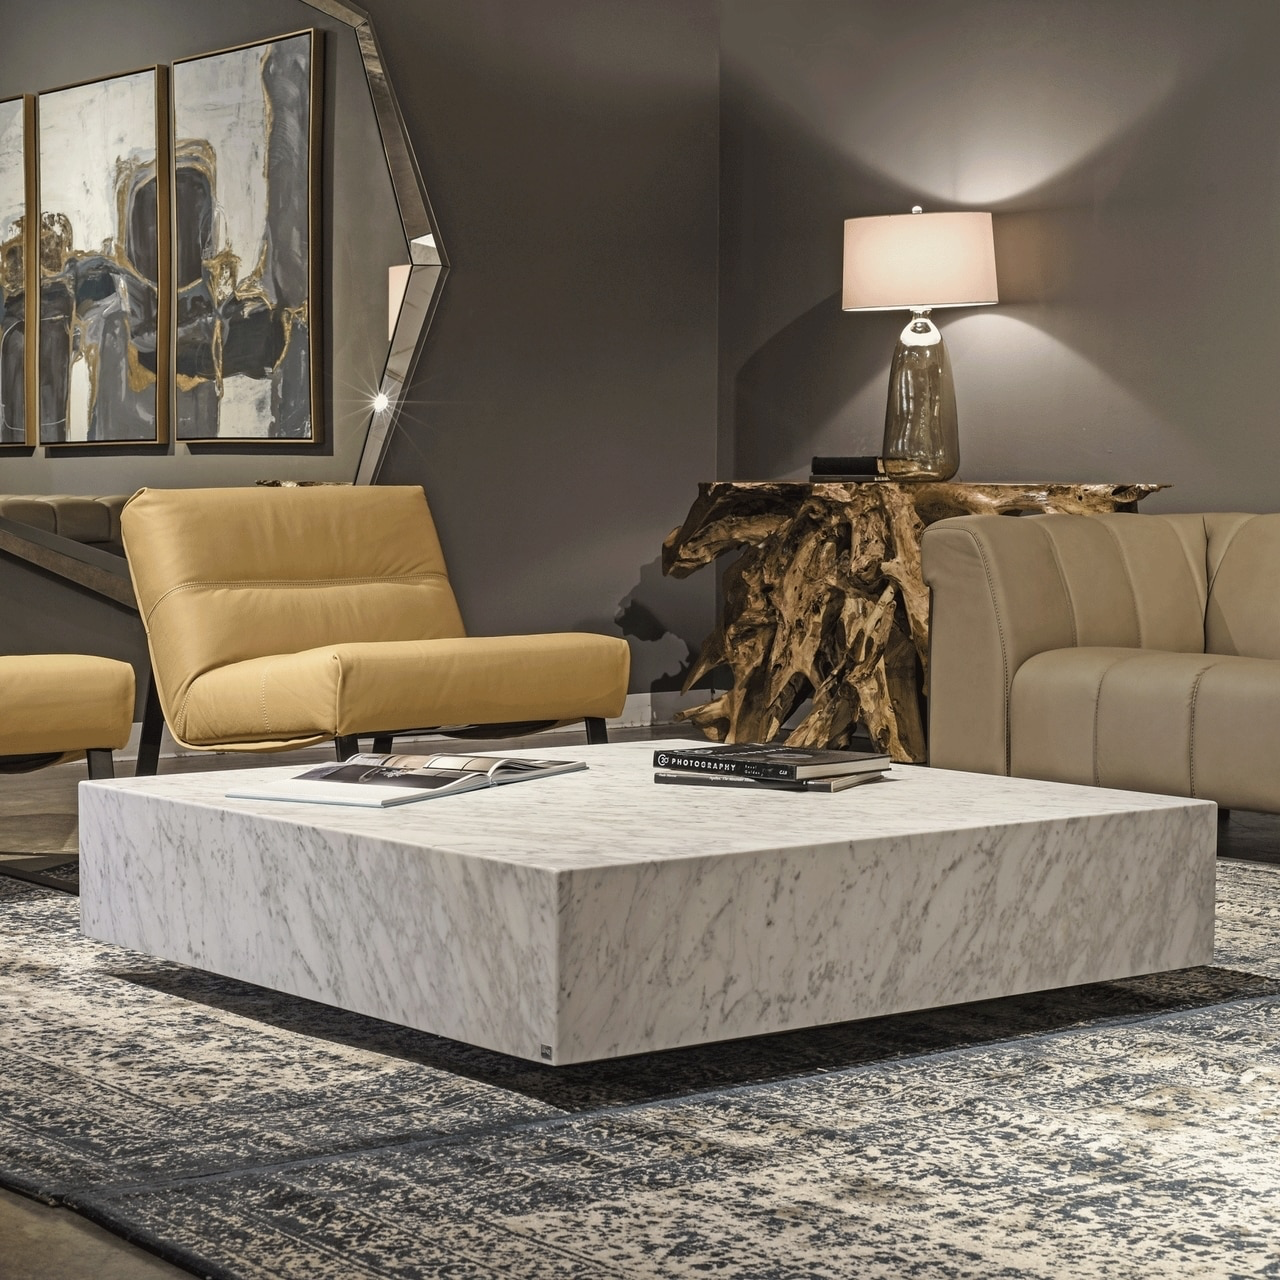 Monolith Cocktail Table Cocktail Tables Living Room Living Room Decor Modern Furniture [ 1280 x 1280 Pixel ]